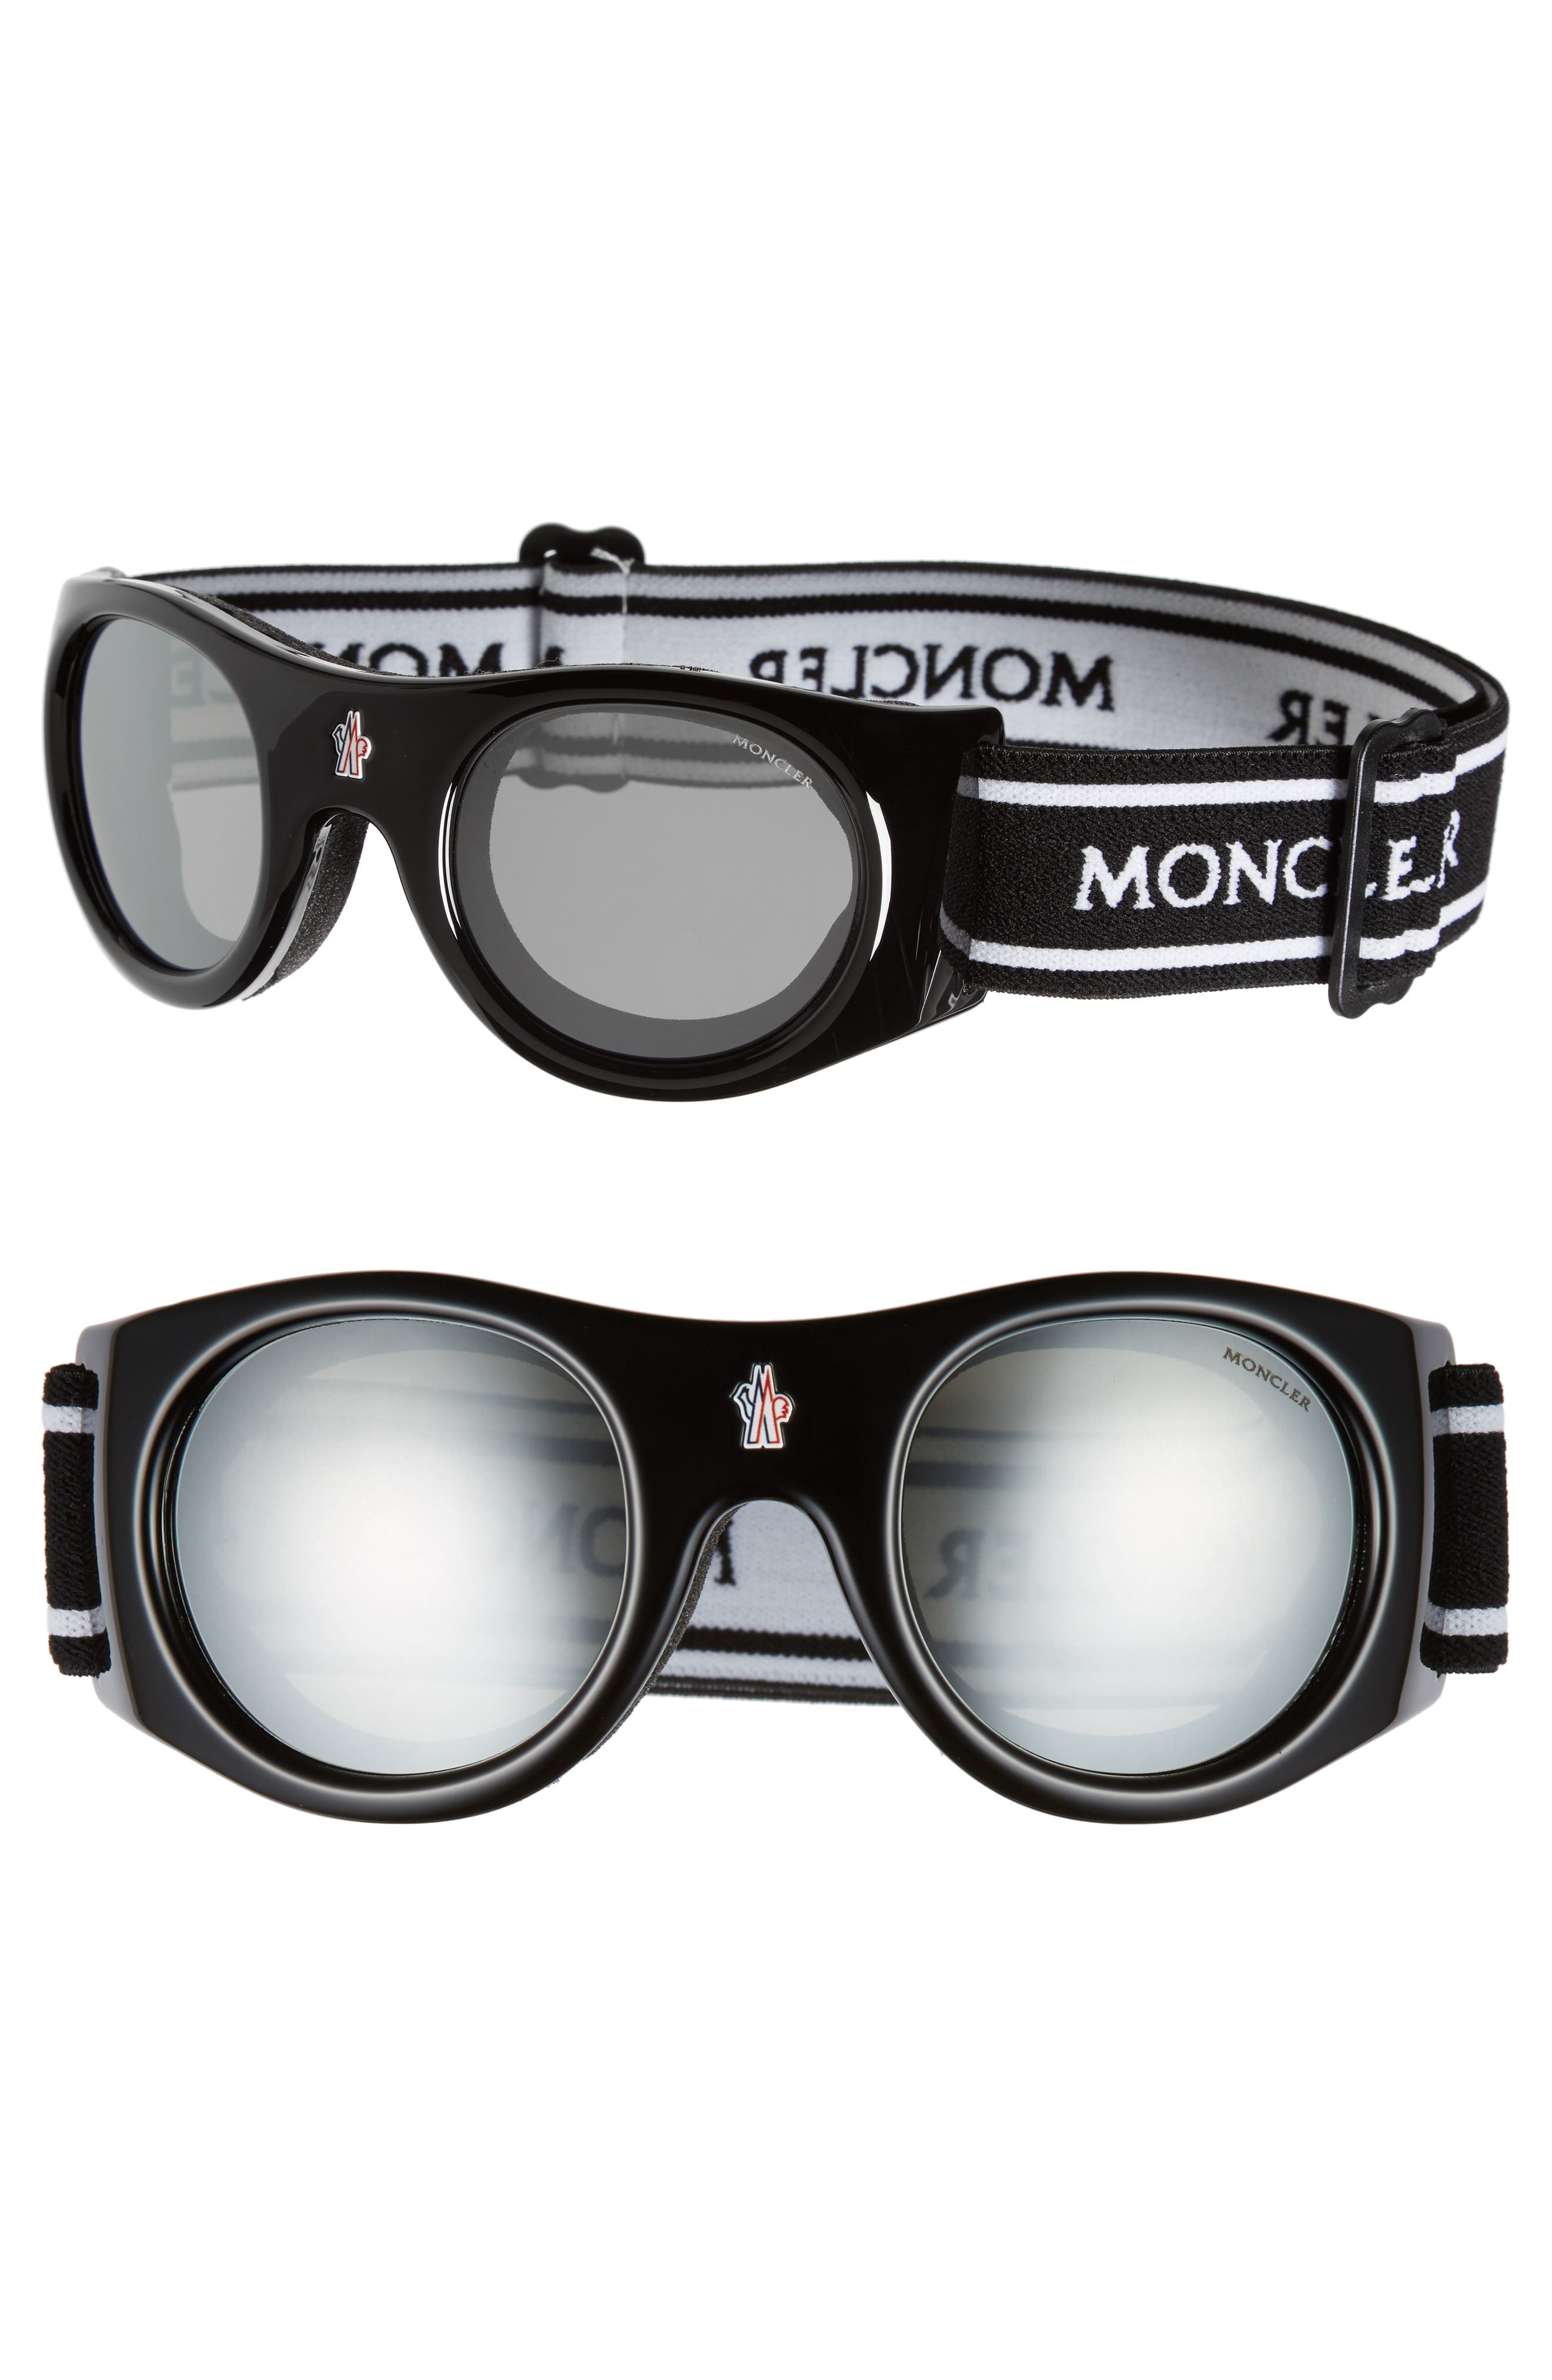 Moncler Anti-Fog Goggles